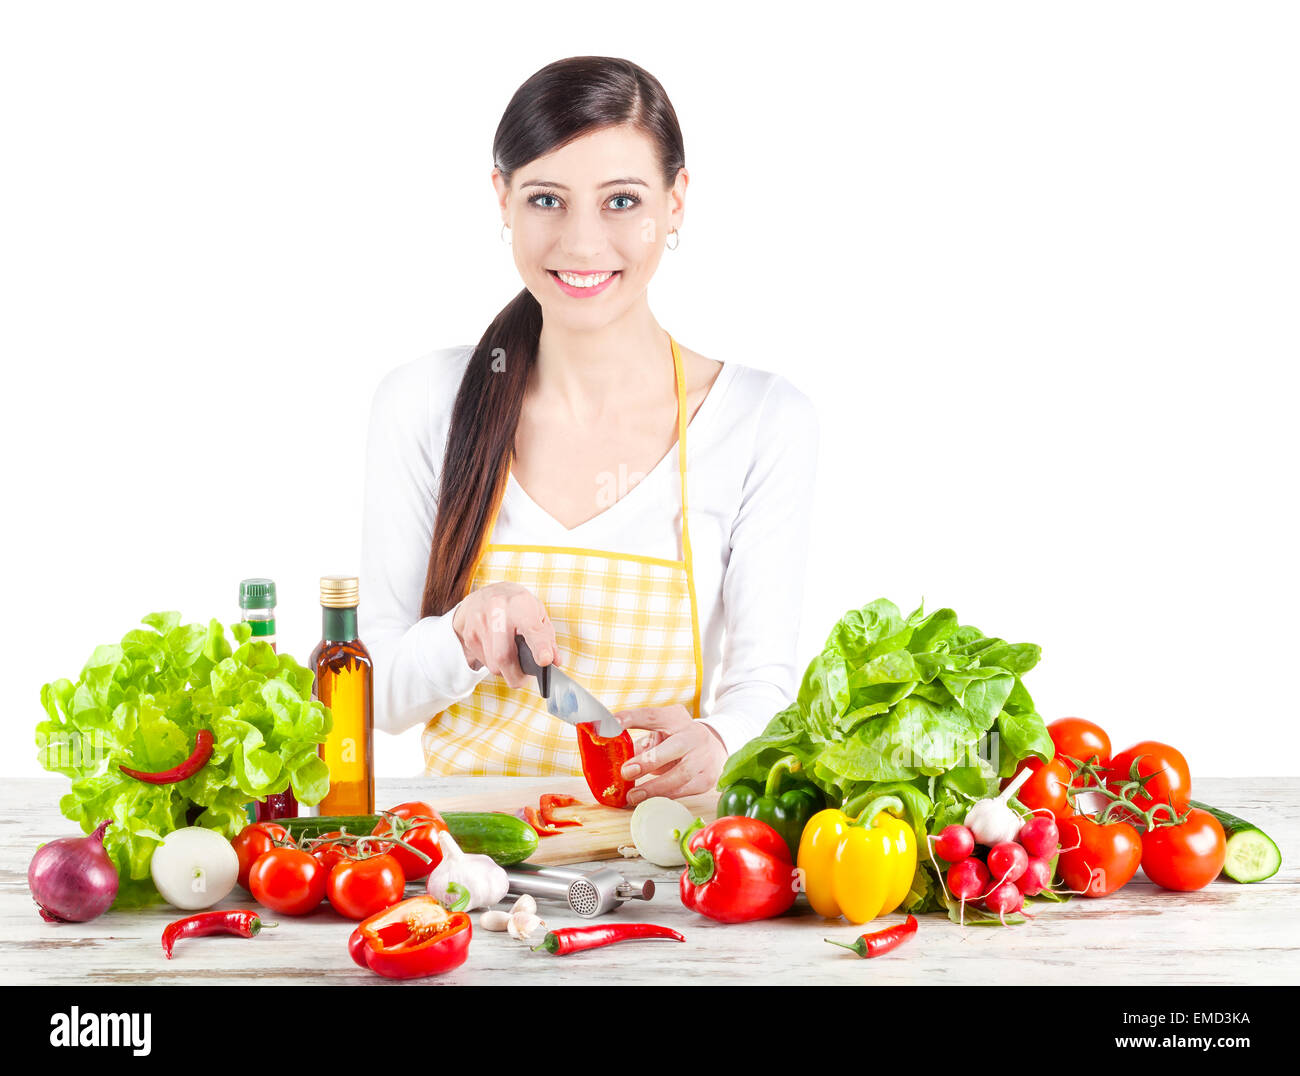 Smiling woman preparing salad. L'alimentation saine et l'alimentation de concept. Isolé sur blanc. Photo Stock